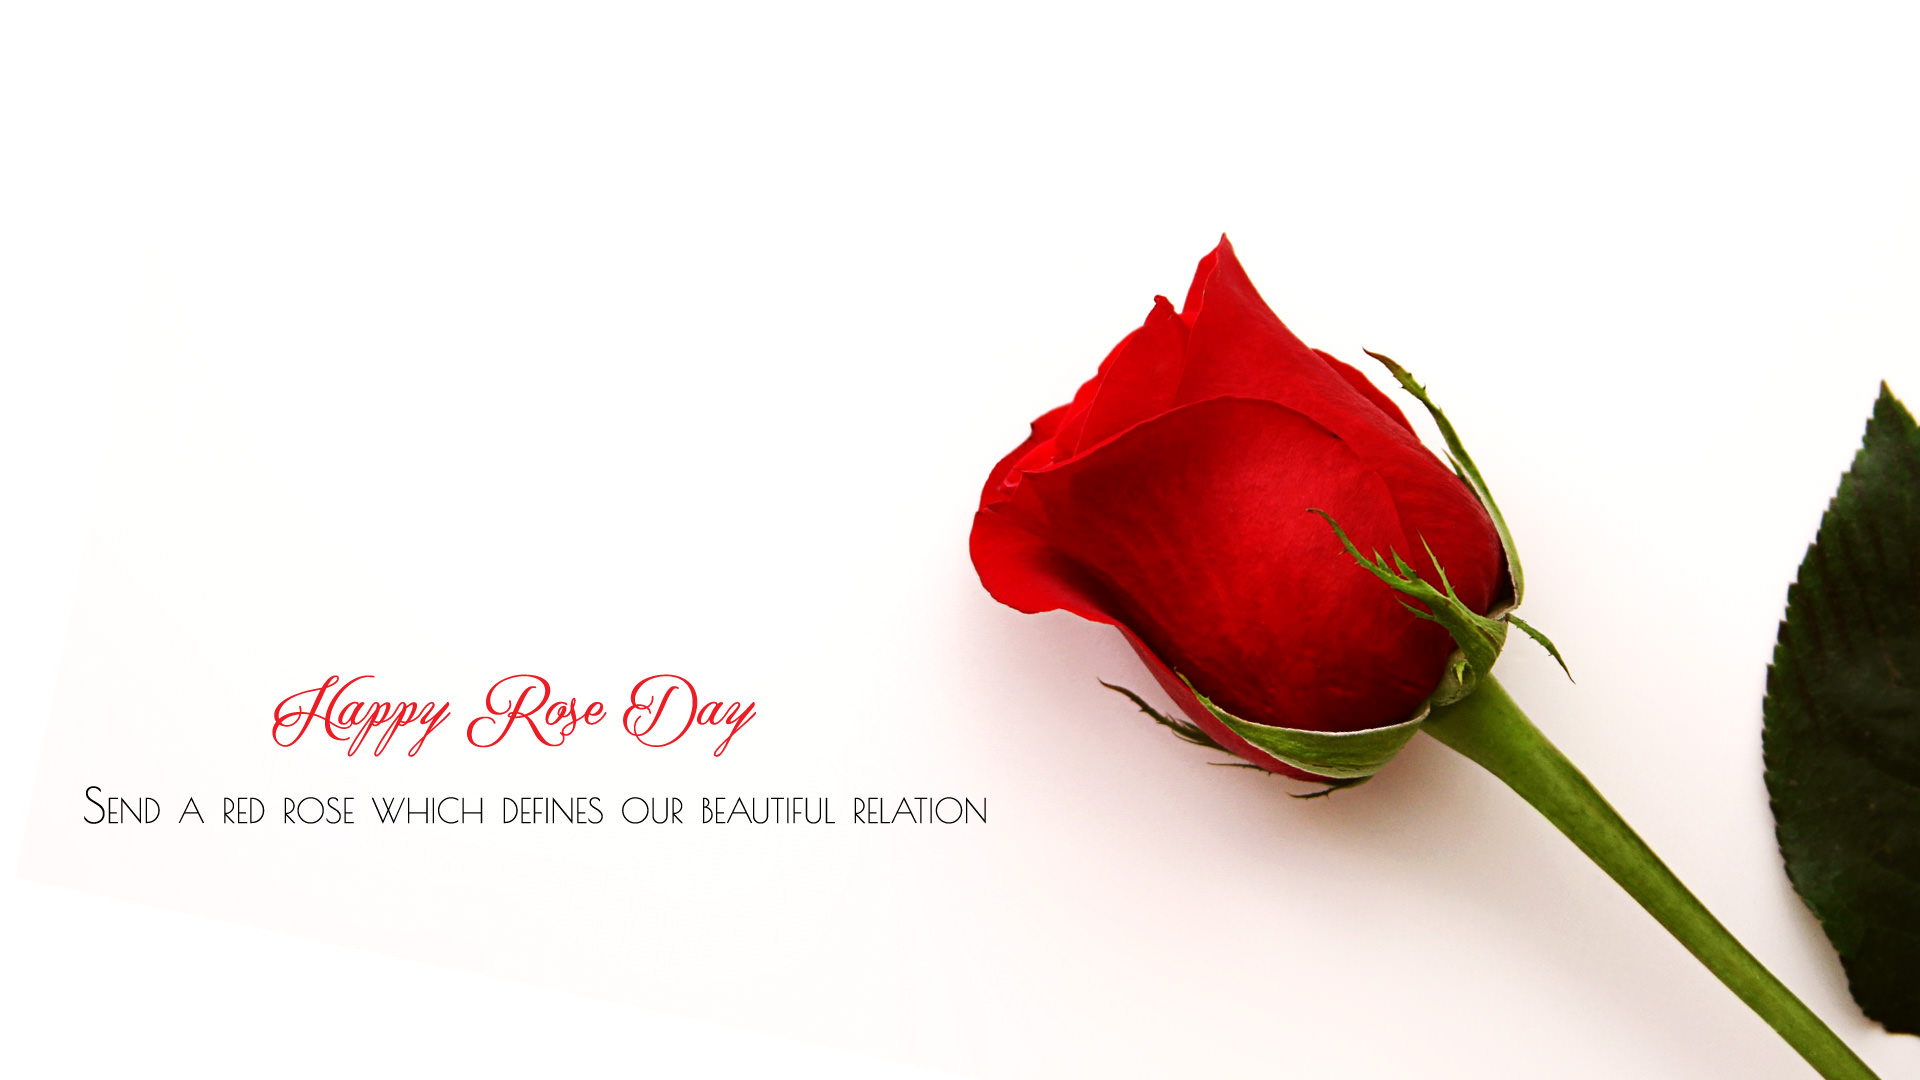 7th Feb Rose Day Wallpaper Hd All Color Of Roses For Lover Friends